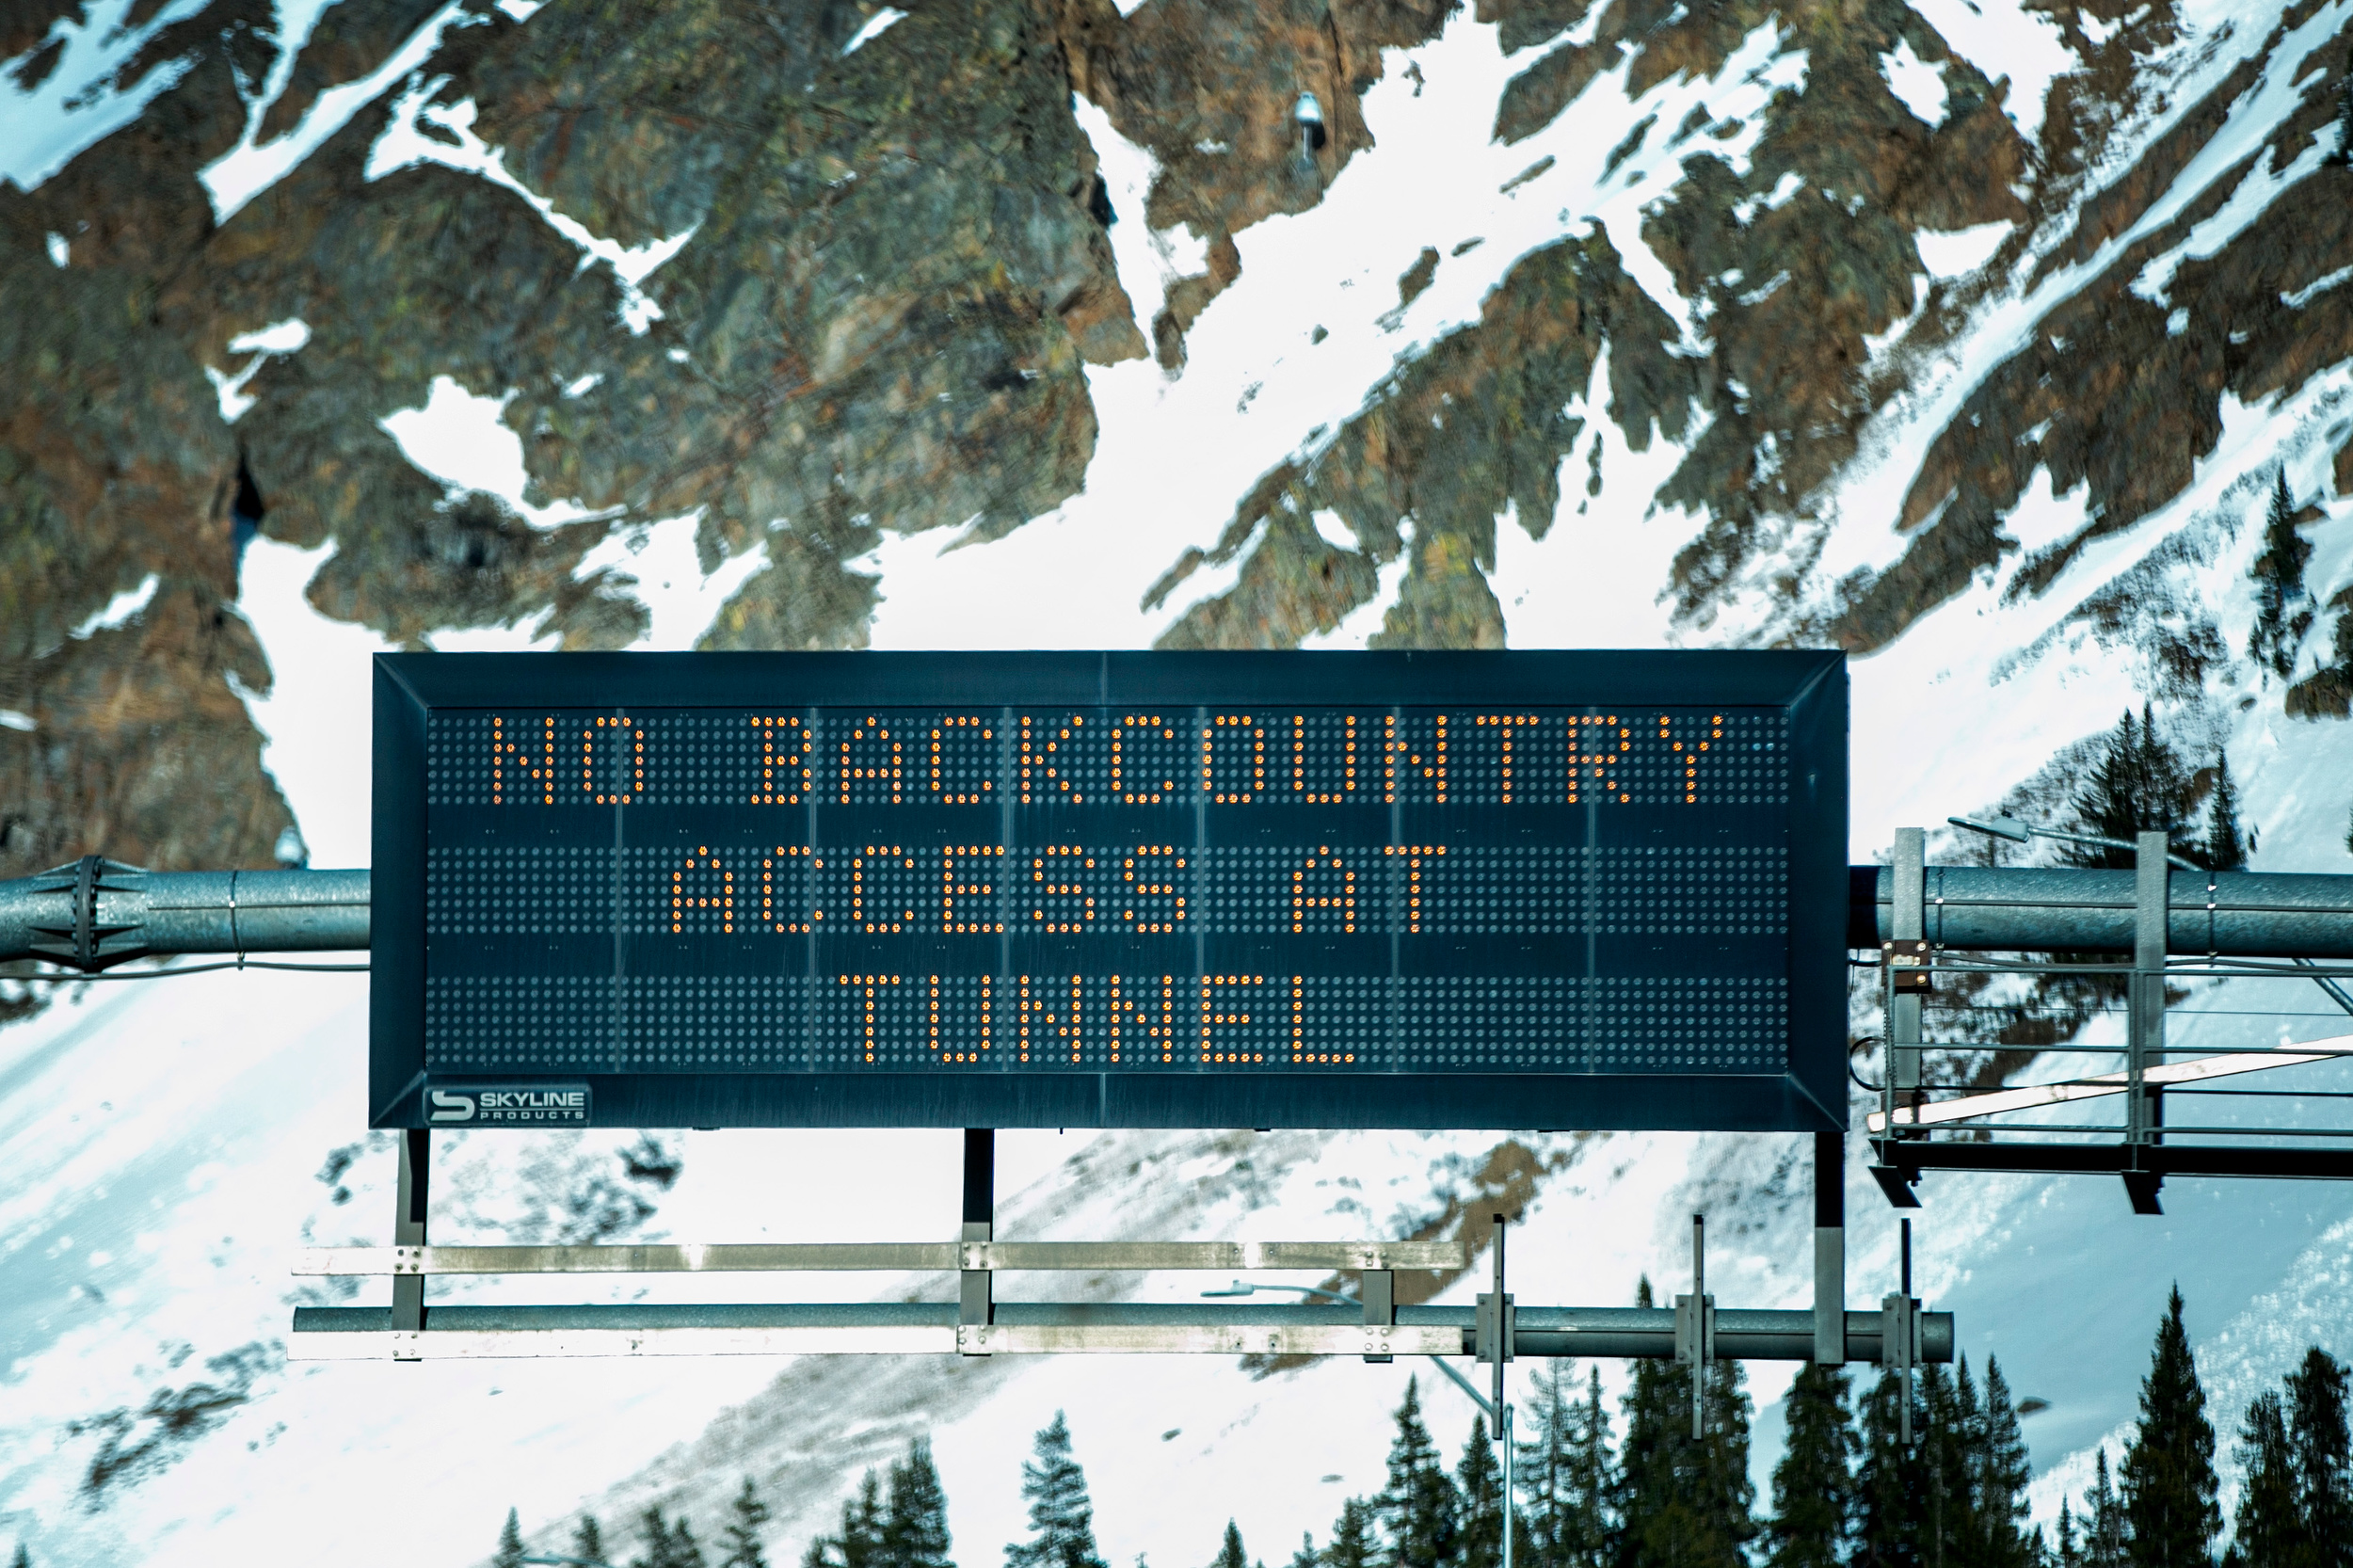 Interstate 70 Backcountry Warning Sign